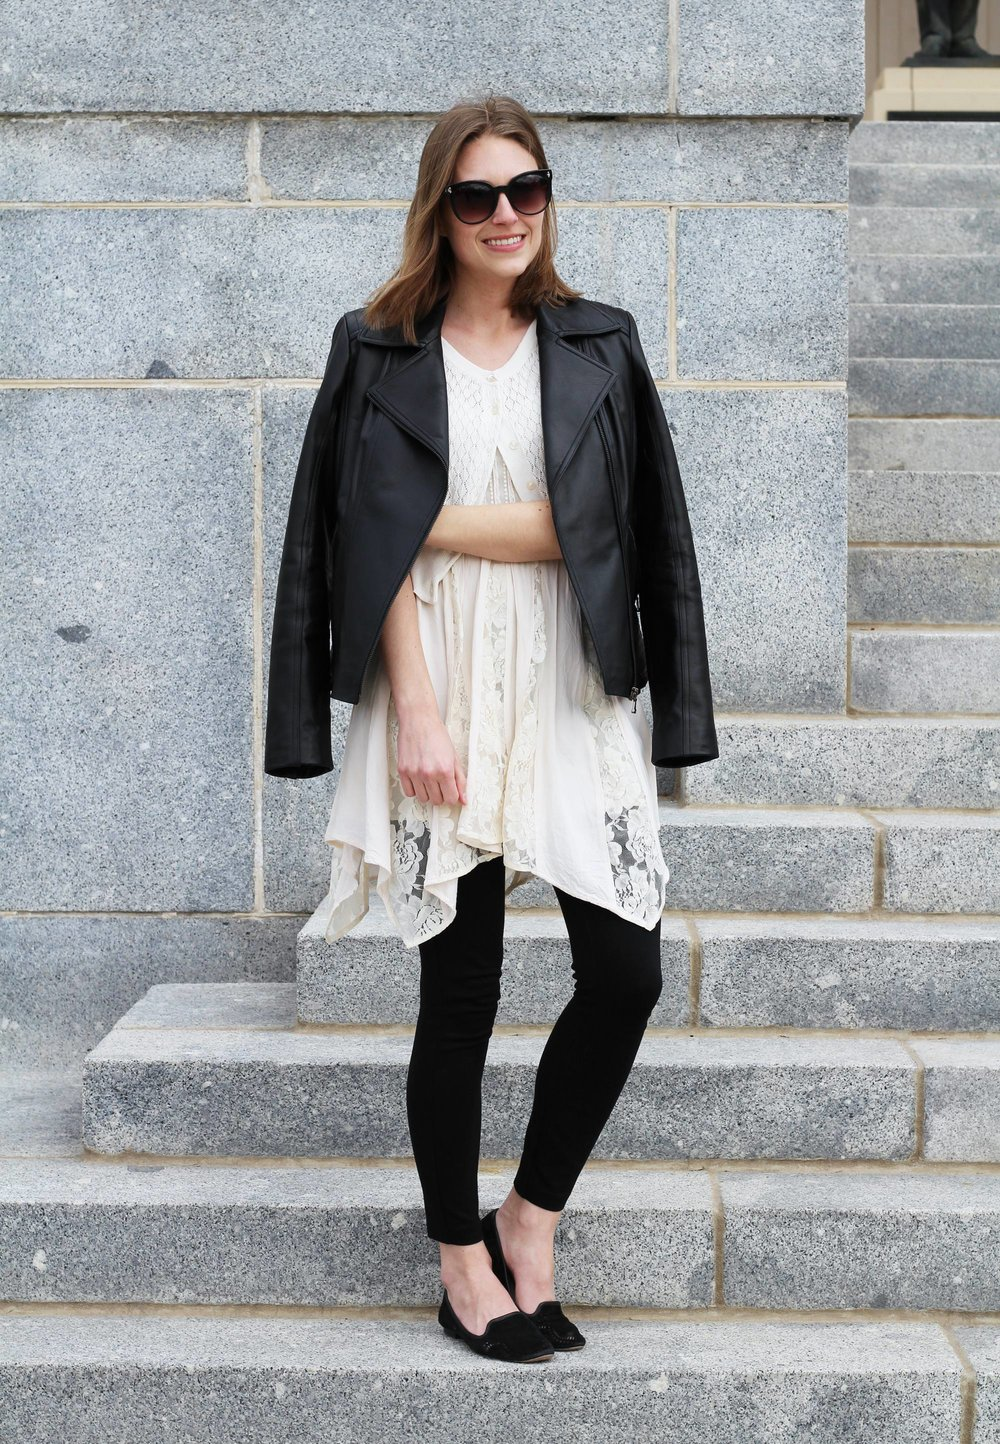 Two bloggers, one garment: Leather jacket